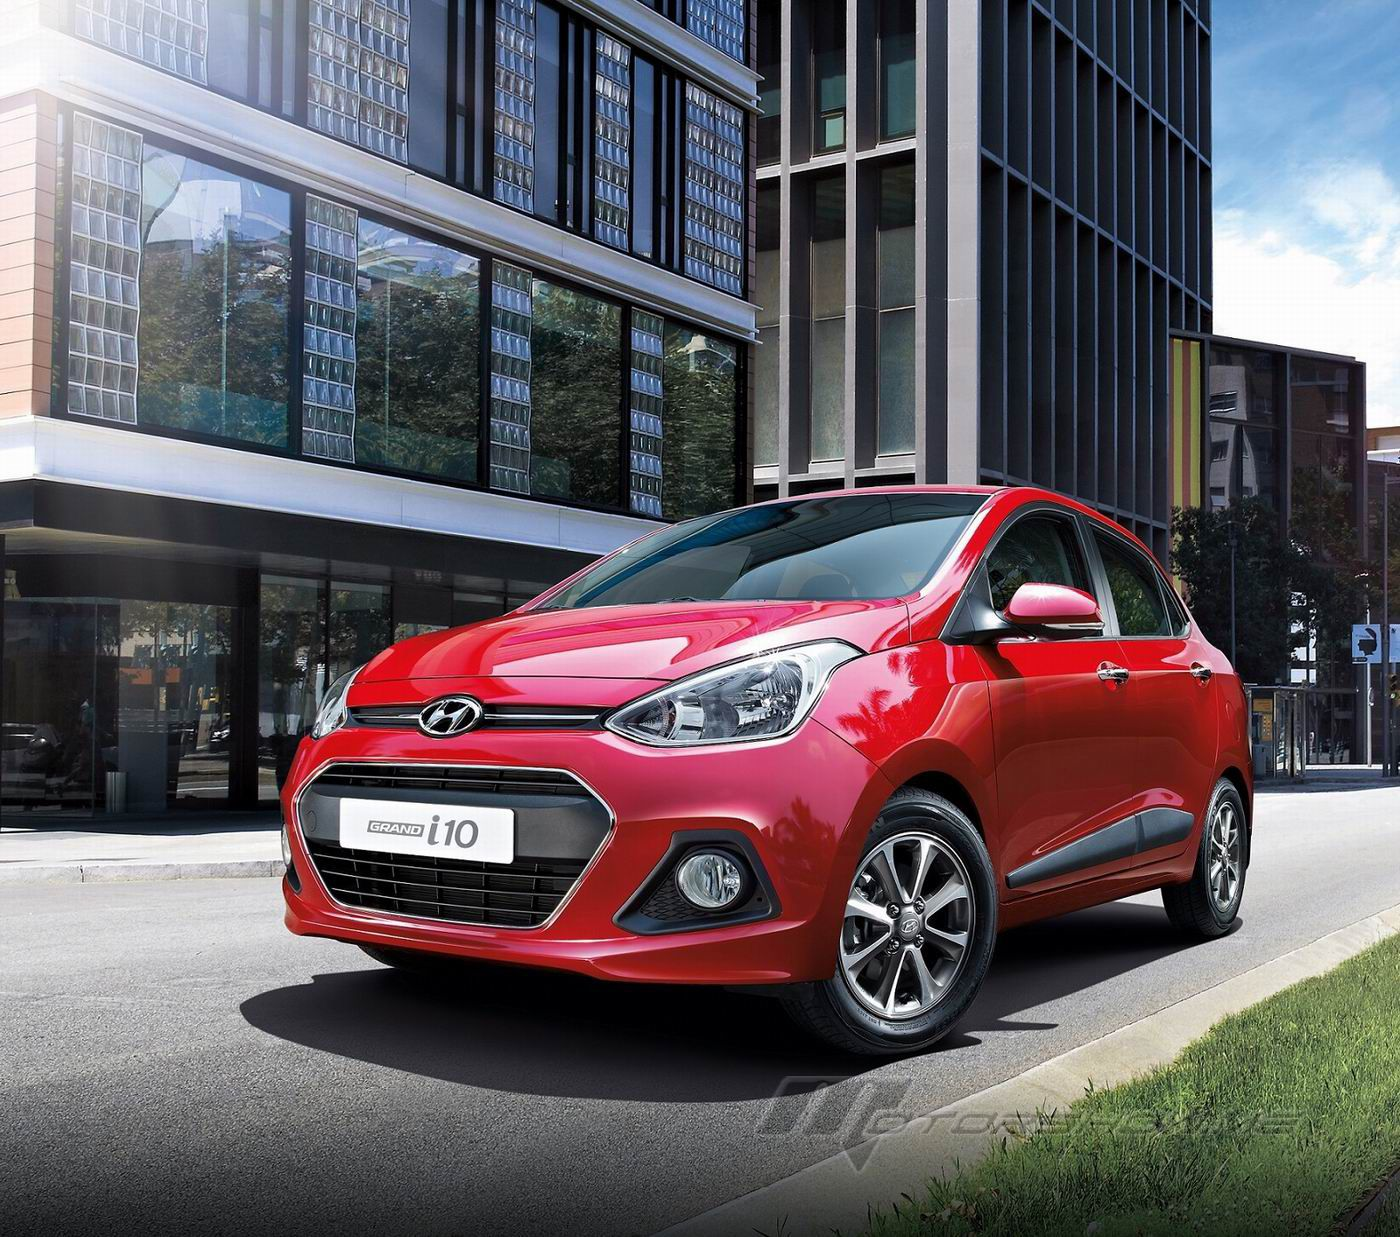 Hyundai I10 HD Wallpapers Free Download